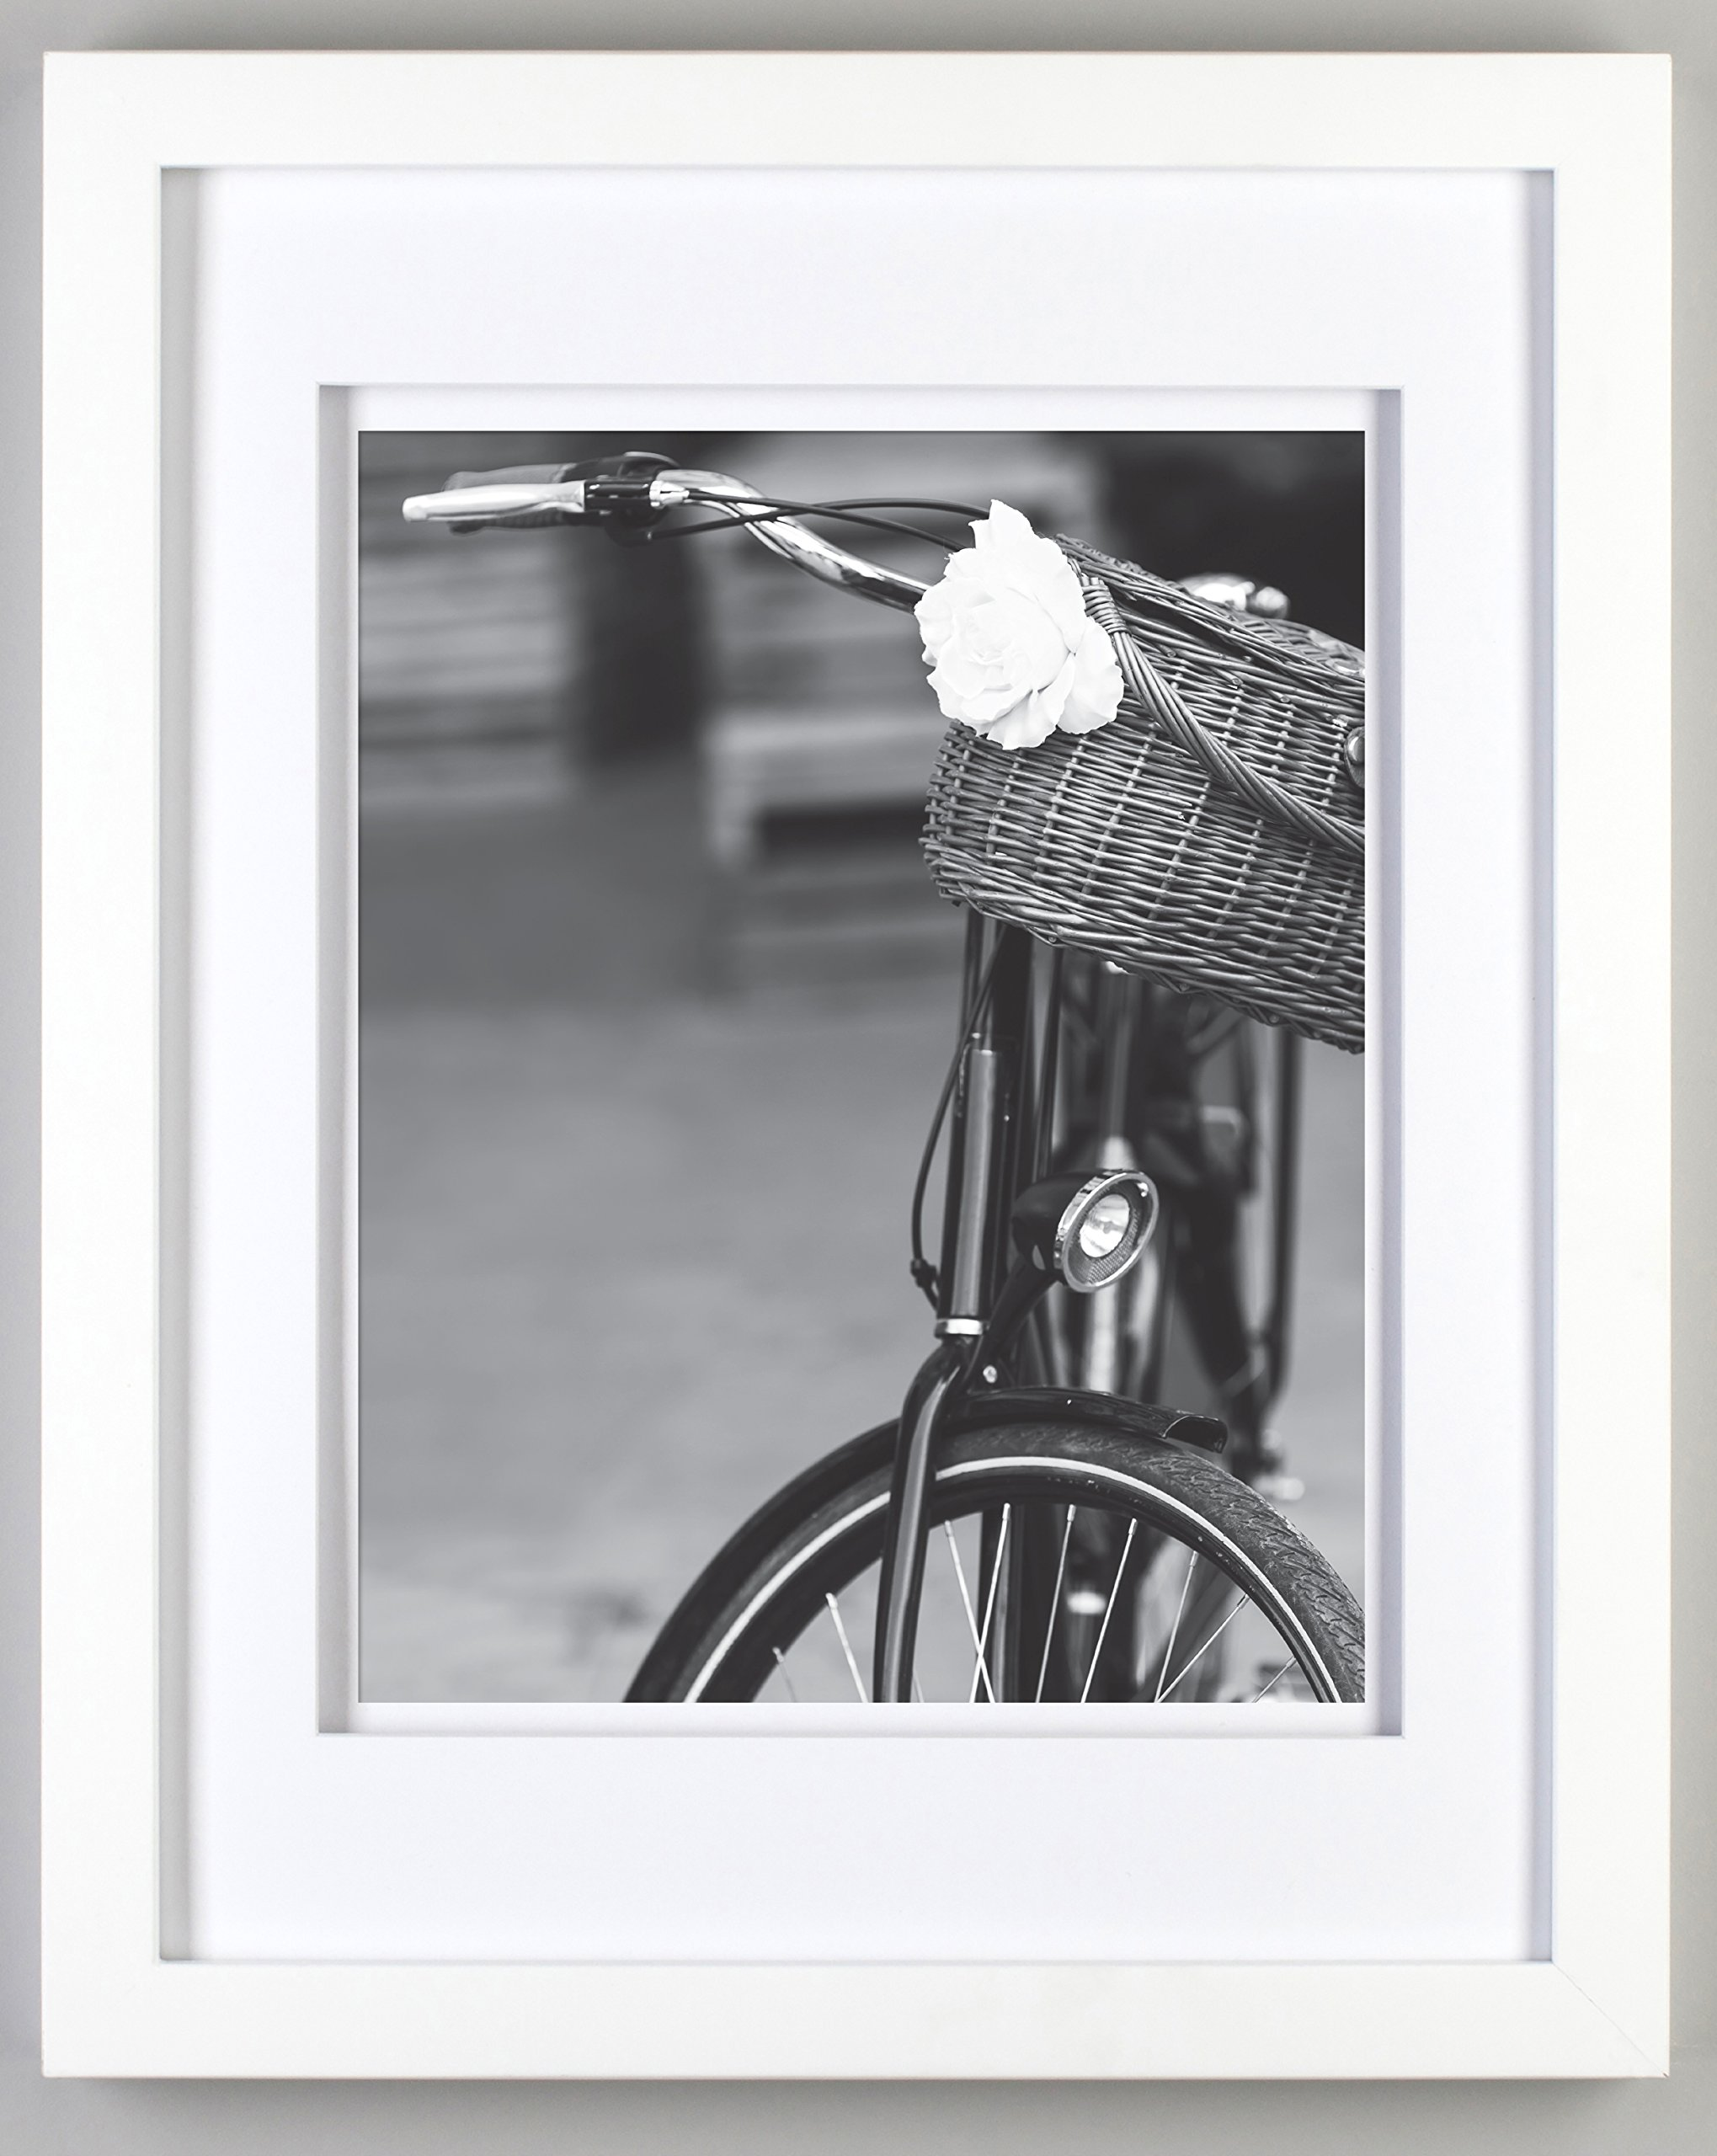 Cheap White Frame 8x10 Find White Frame 8x10 Deals On Line At